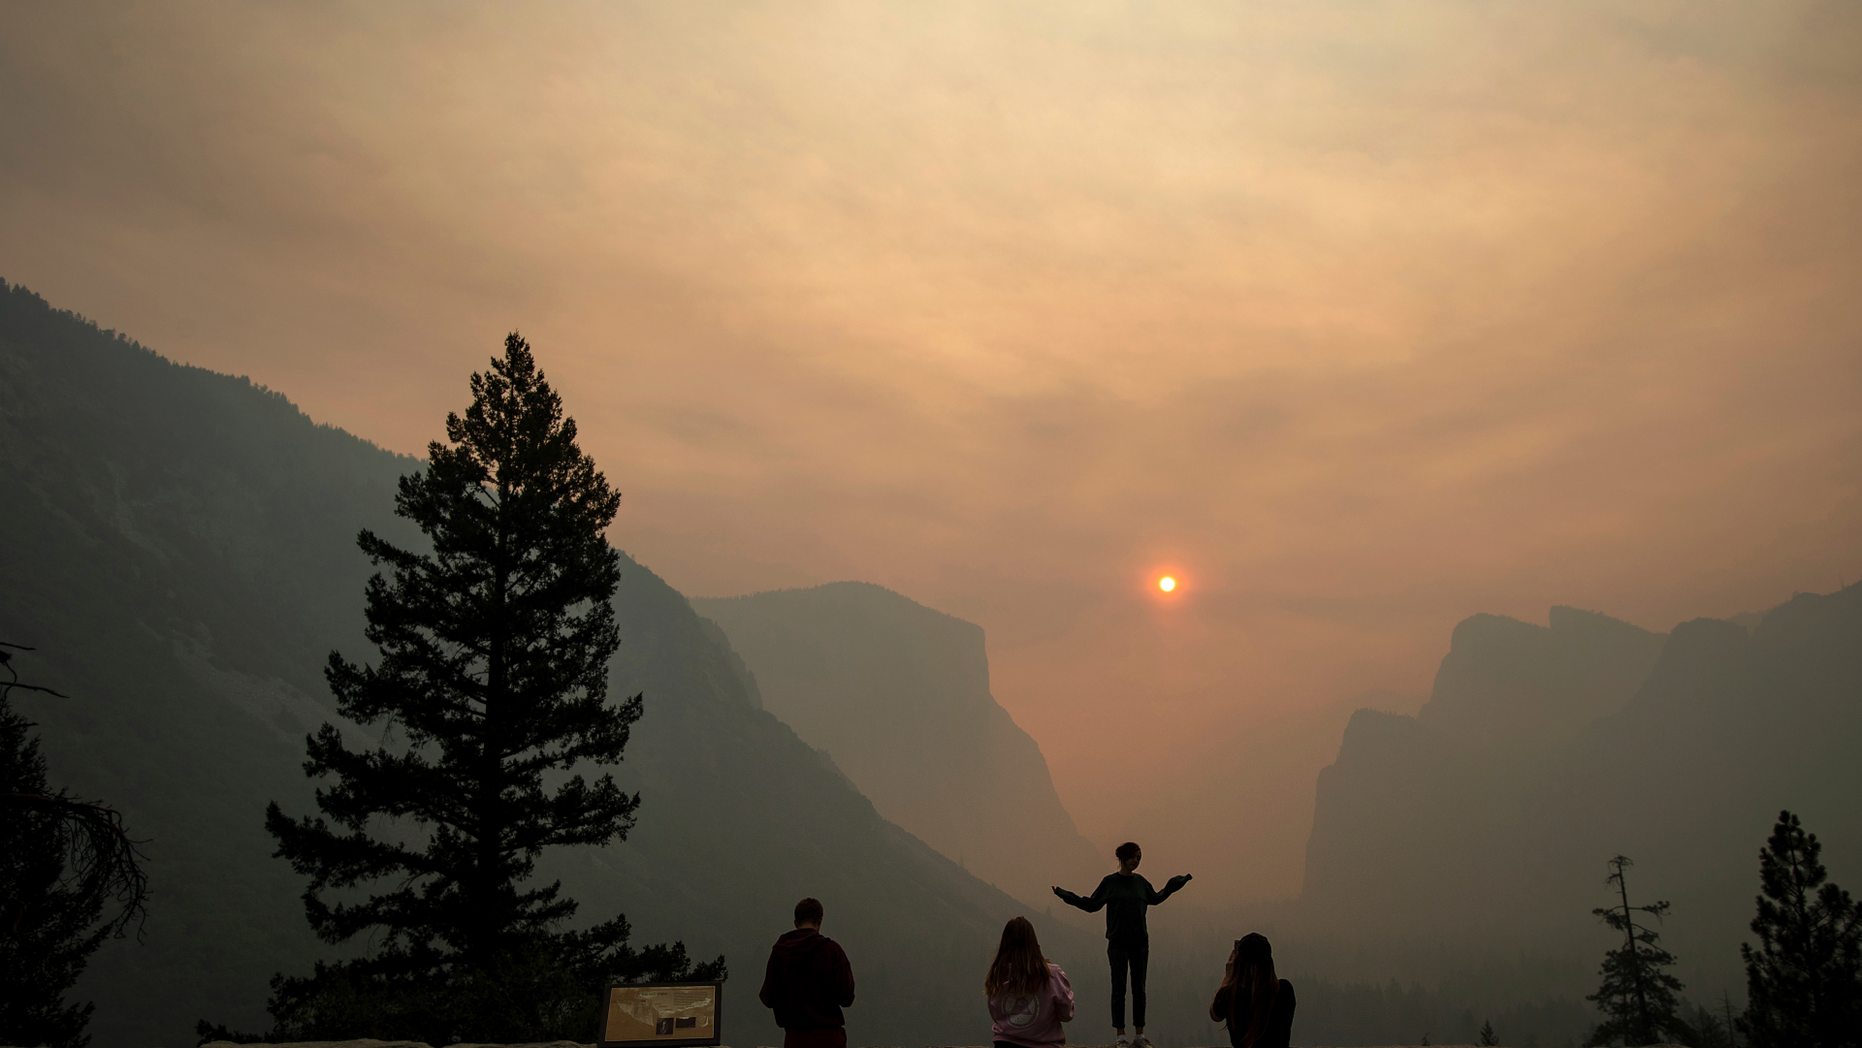 FILE - In this July 25, 2018 file photo, Hannah Whyatt poses for a friend's photo as smoke from the Ferguson fire fills Yosemite Valley in Yosemite National Park, Calif. Authorities say the Ferguson fire, that killed two firefighters and destroyed nearly a dozen buildings in Northern California, was caused by a vehicle. The U.S. Forest Service on Friday, Oct. 5, 2018, said investigators determined that a hot catalytic converter ignited dry roadside vegetation. However, investigators haven't identified the vehicle. (AP Photo/Noah Berger, File)